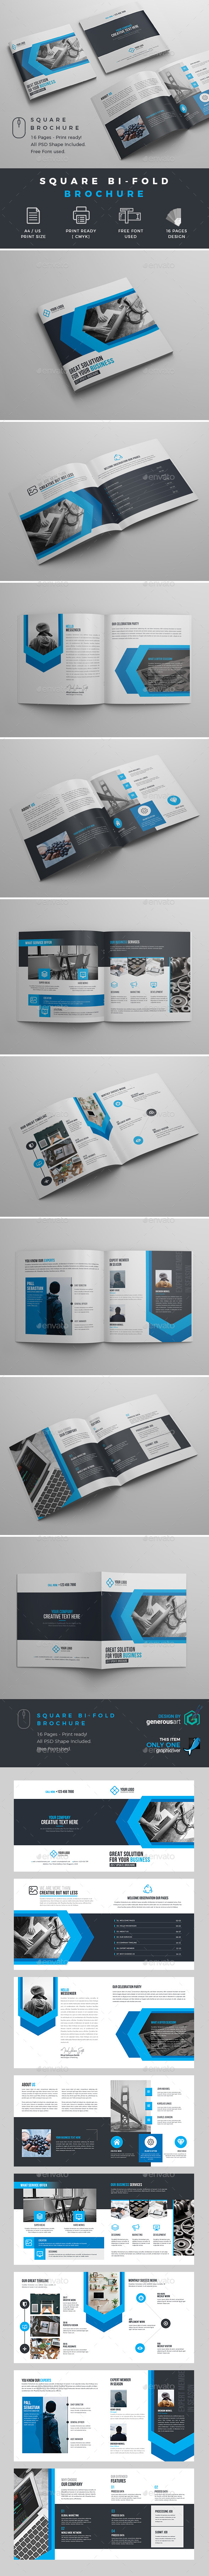 Square Bi-Fold Brochure Template - Corporate Brochures